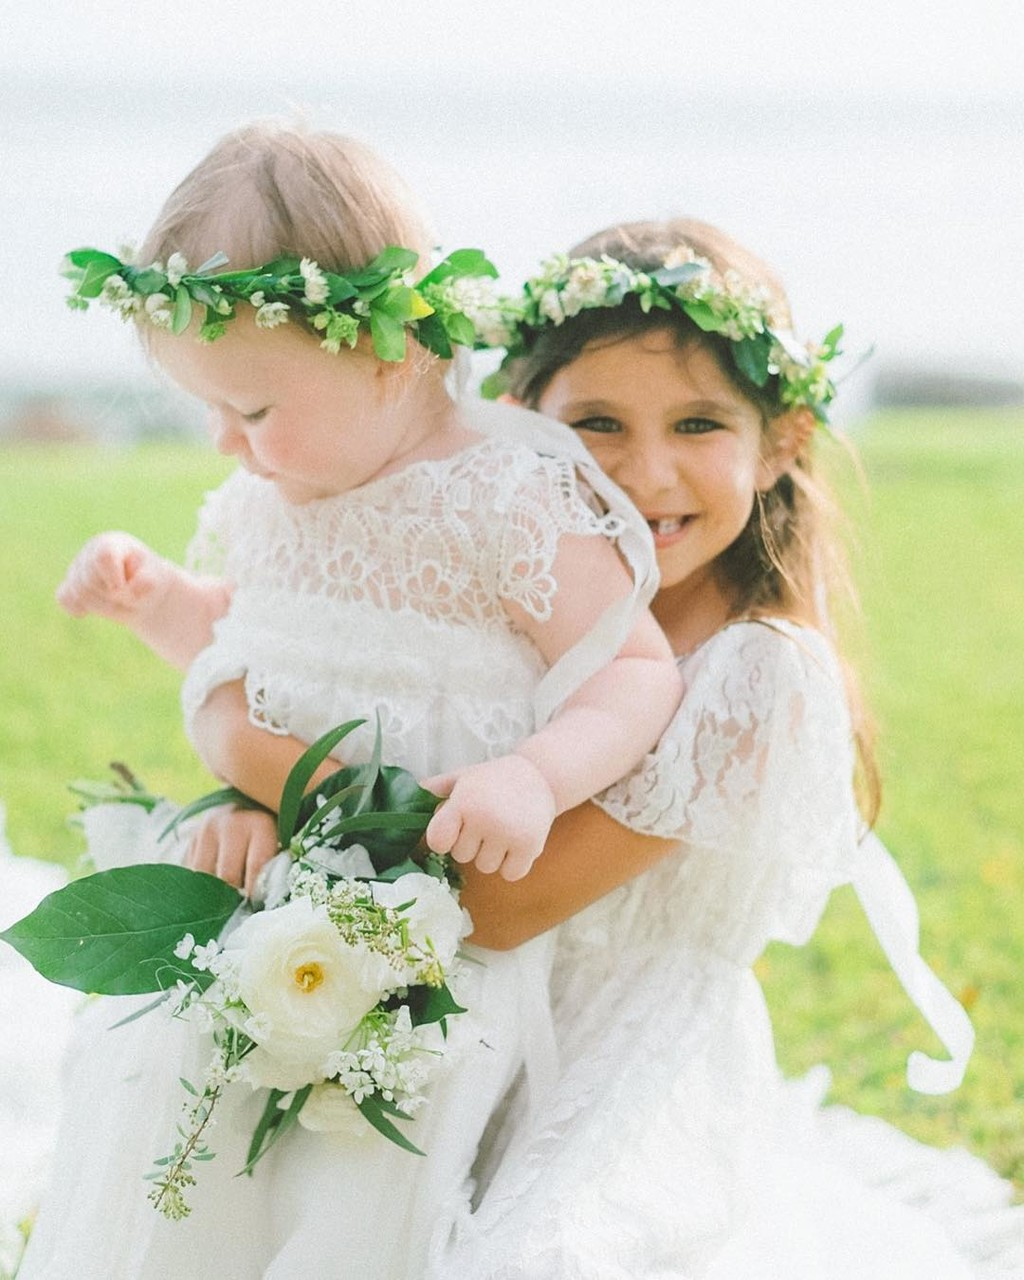 Cuteness overload and I just can't get enough of this day. This flower girls are every little girls Dreams ✨